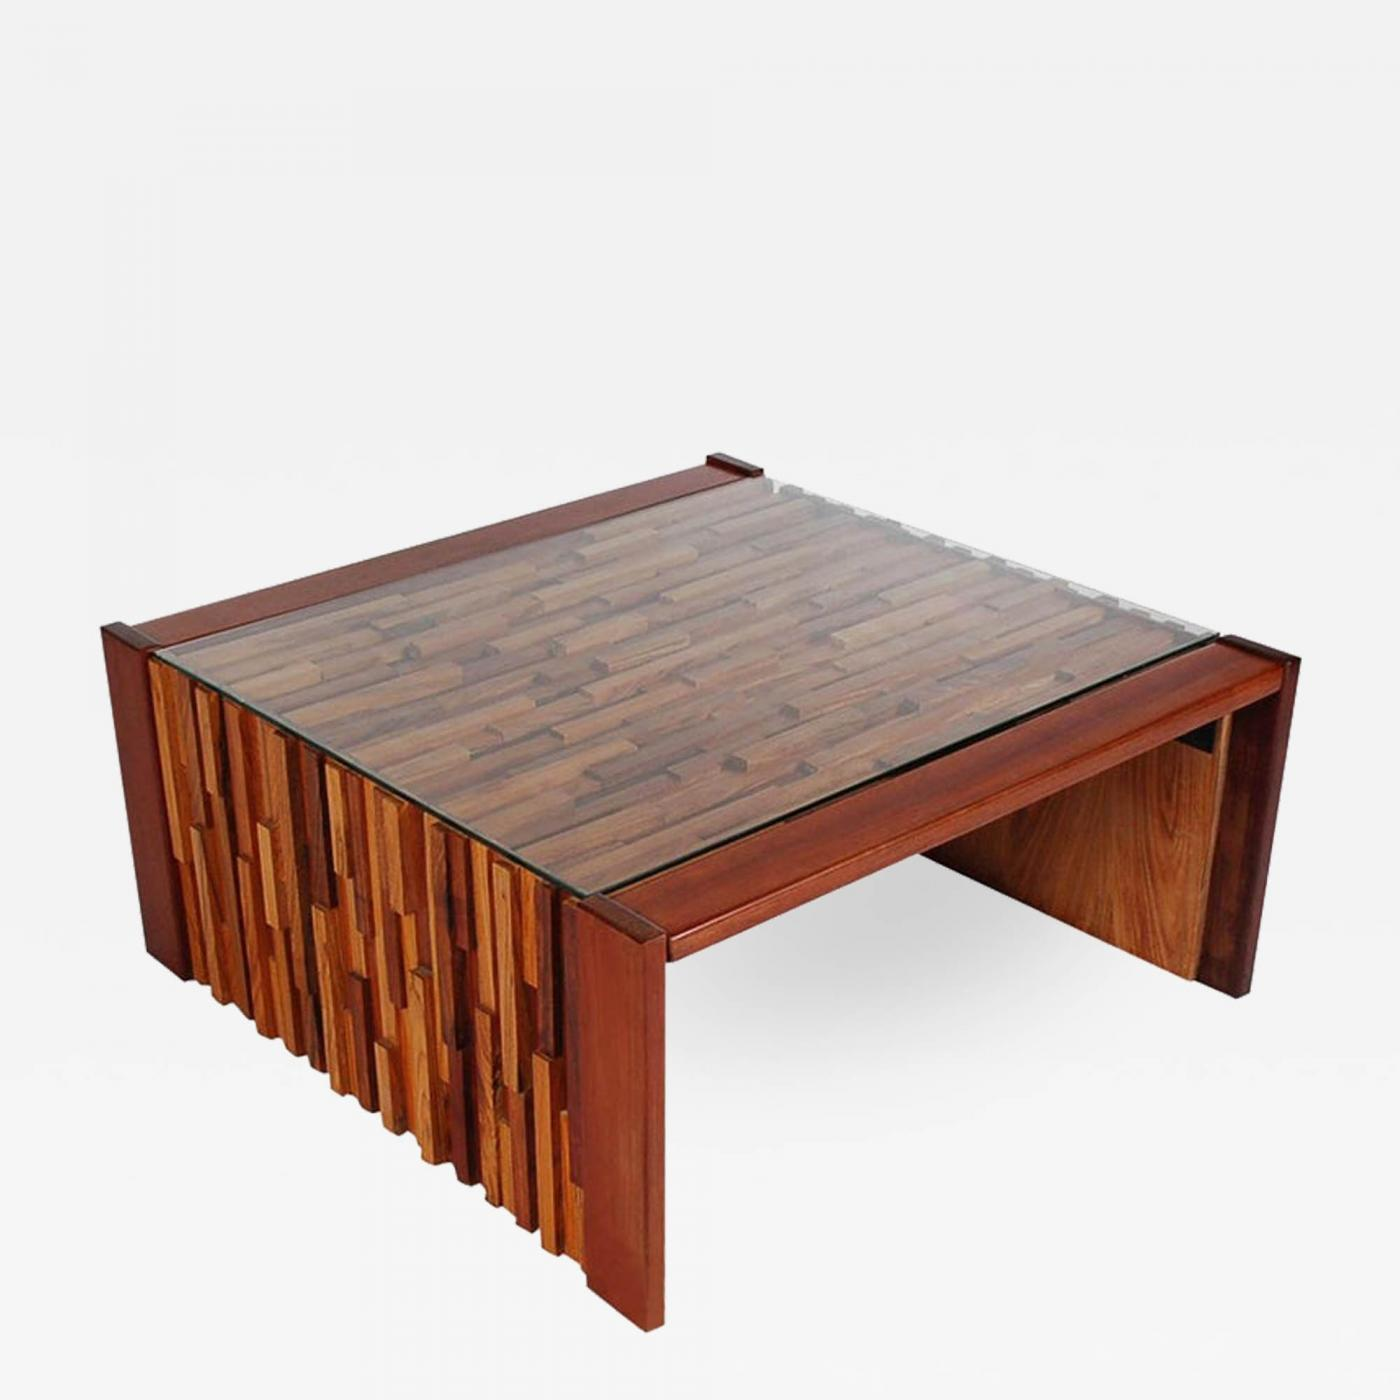 percival lafer small scale mid century modern exotic wood coffee tables by percival lafer